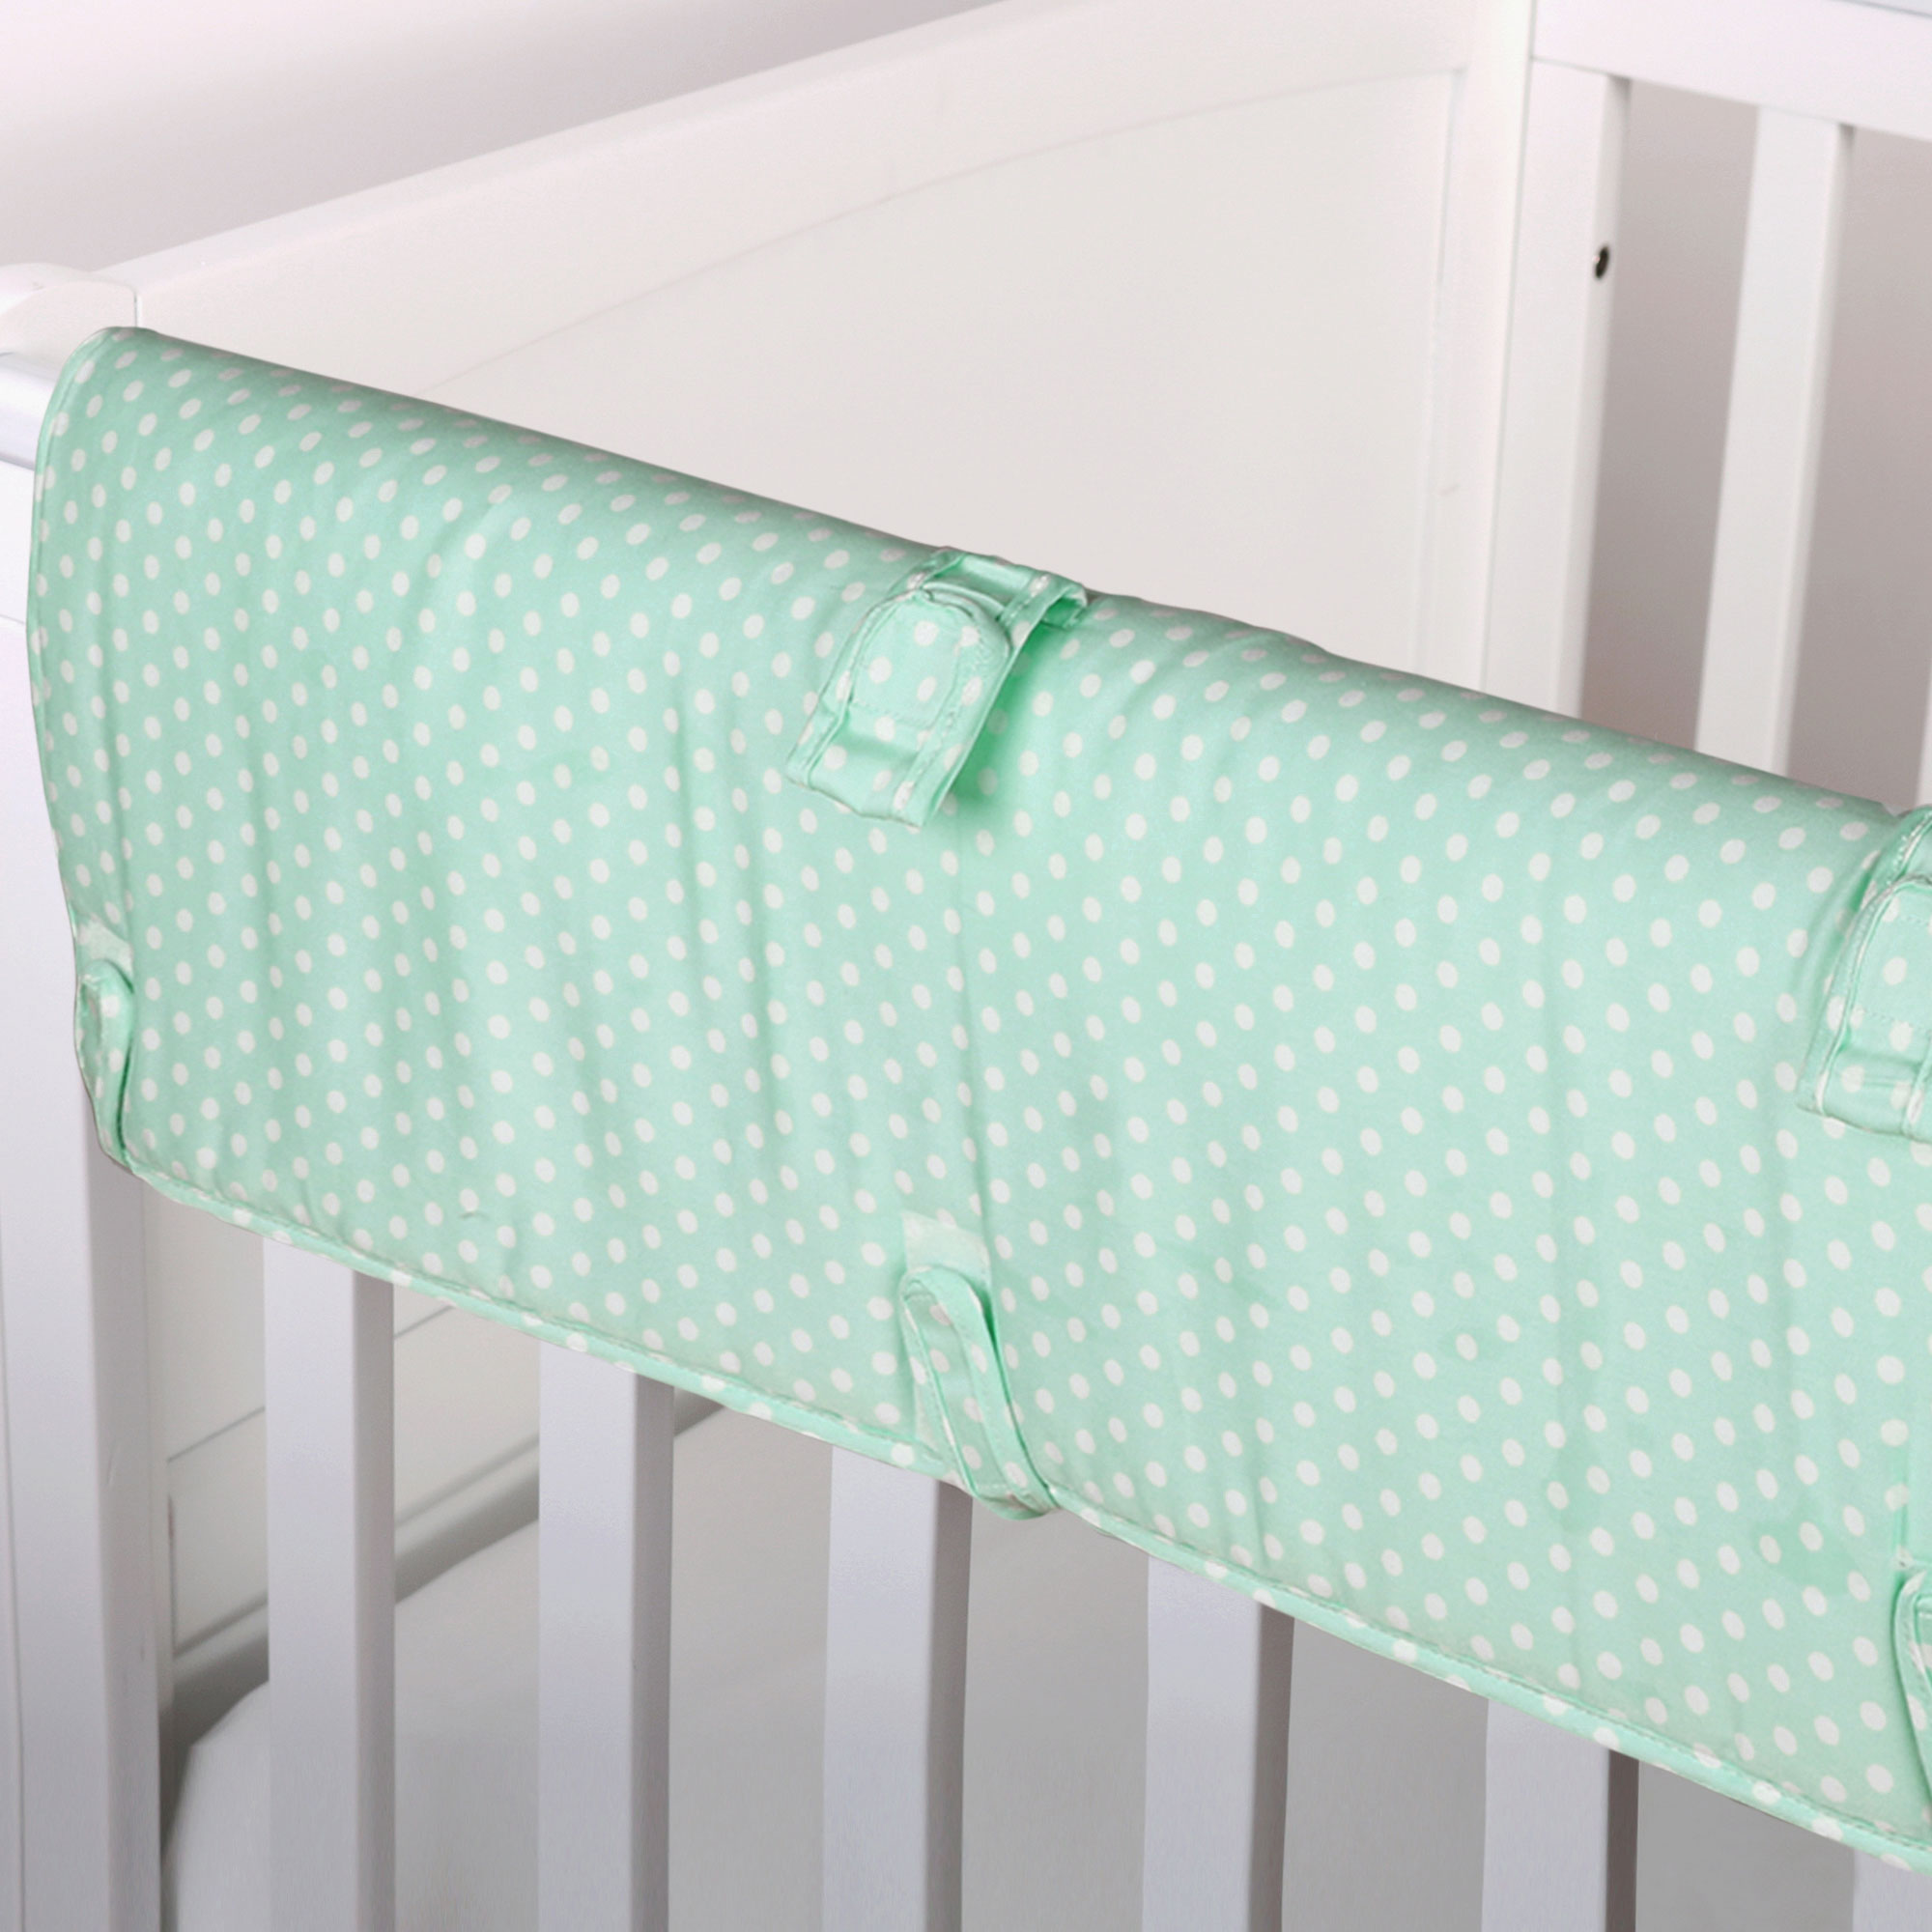 The Peanut Shell Baby Crib Rail Guard - Mint Green Confetti Dot Print - 100% Cotton Sateen Cover, Polyester Fill